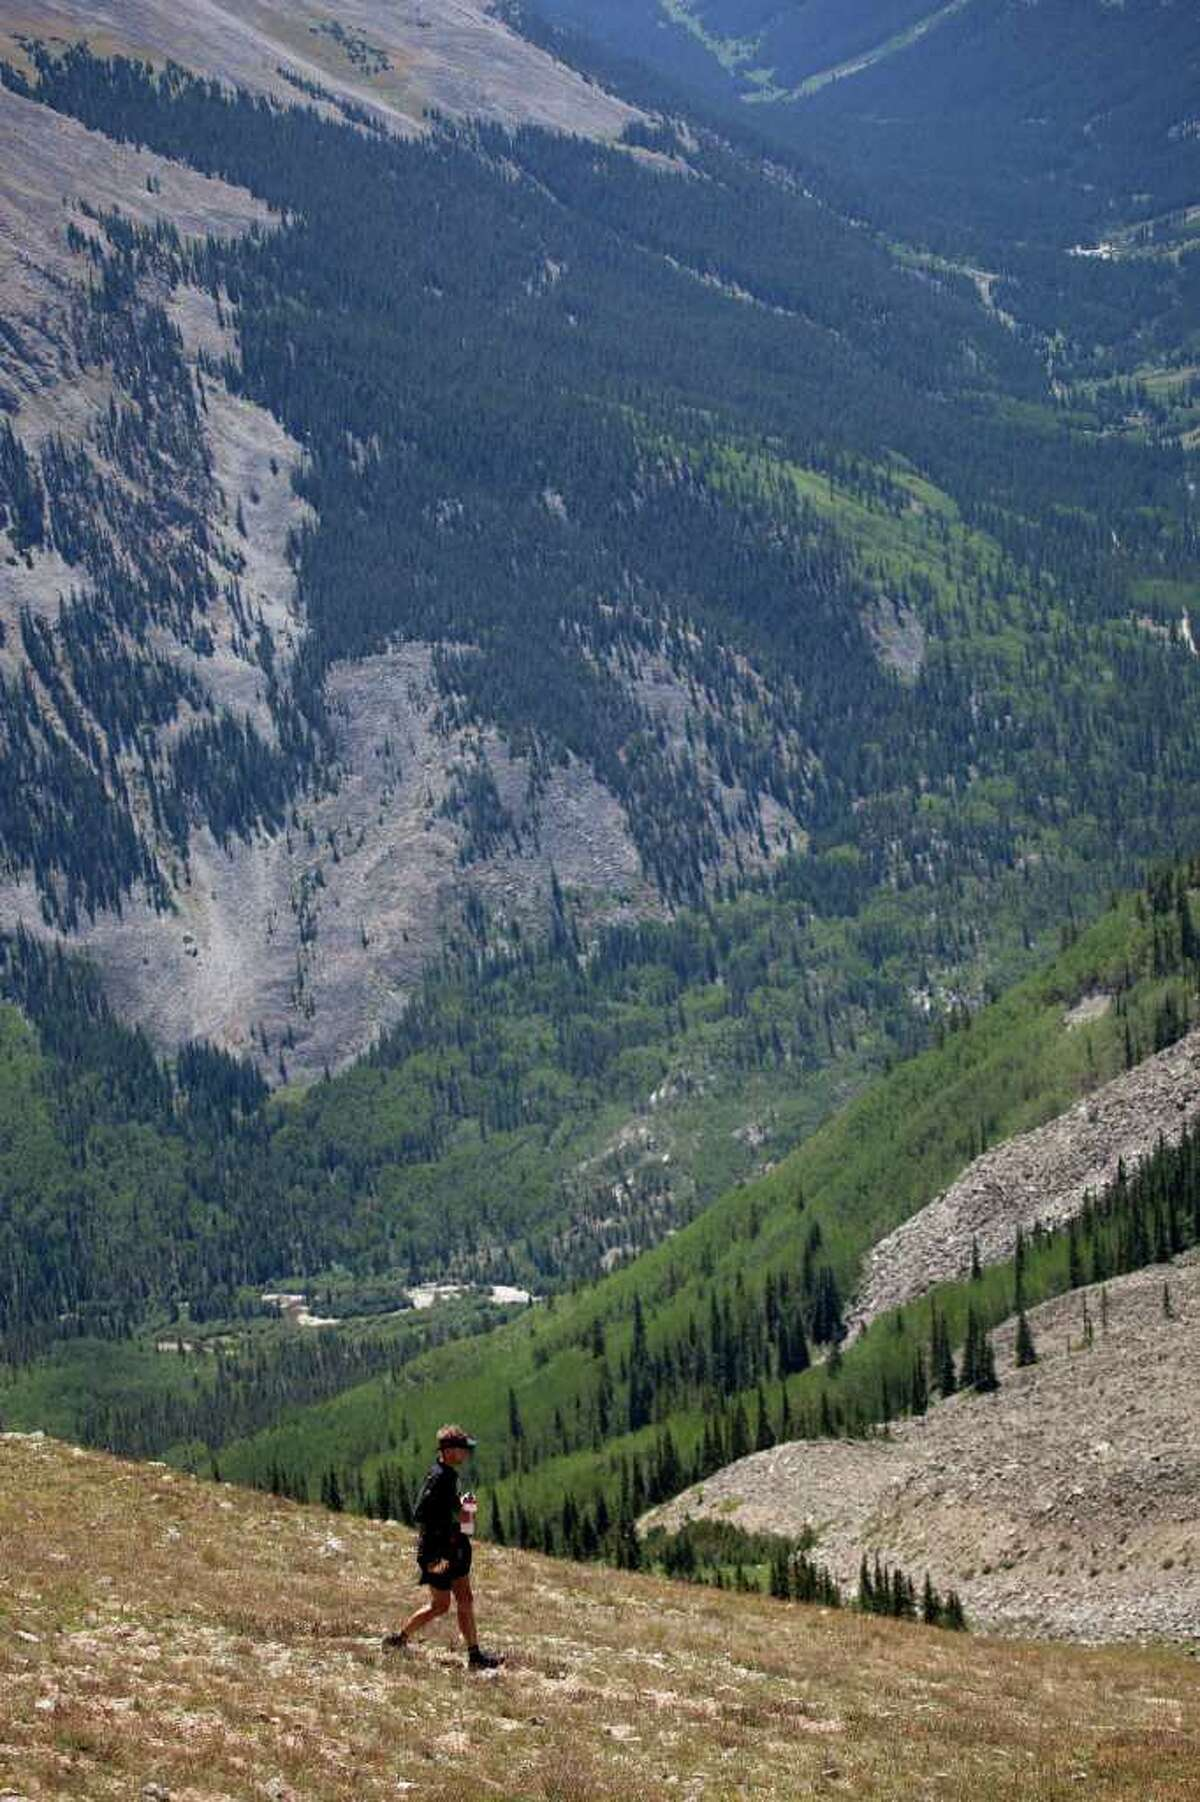 A race heads down from the crest of the 12,600 foot Hope pass on the second half of the 2011 Leadville 100 trail run. Photo courtesy of Glen Delman Photography.